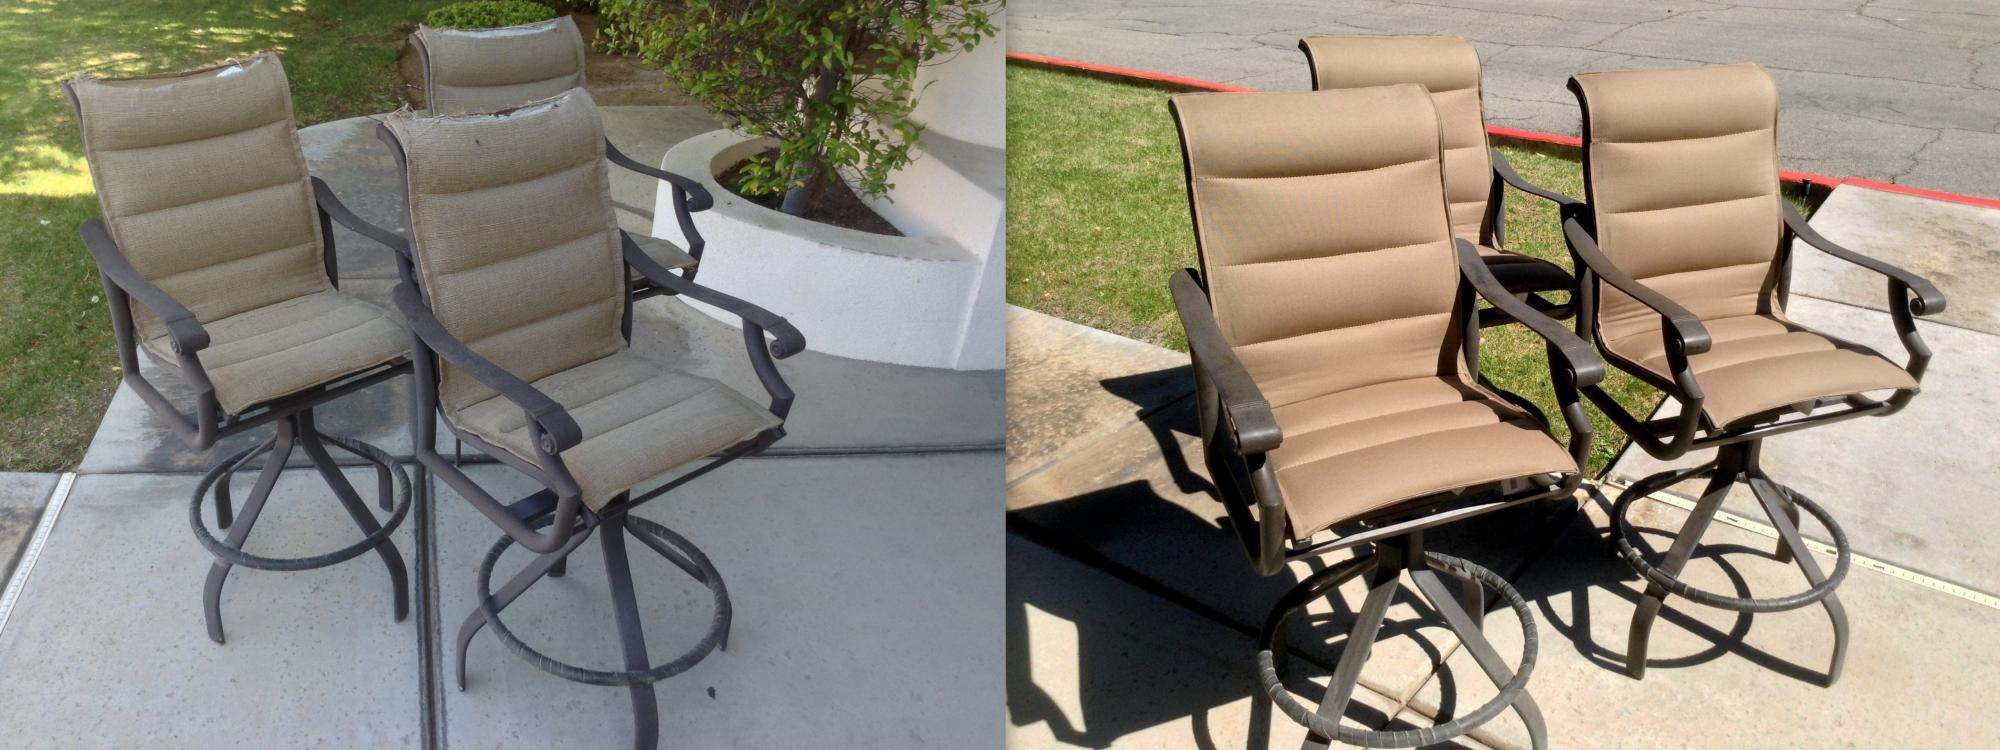 Bar Stool Sling Installation  ~ Before & After